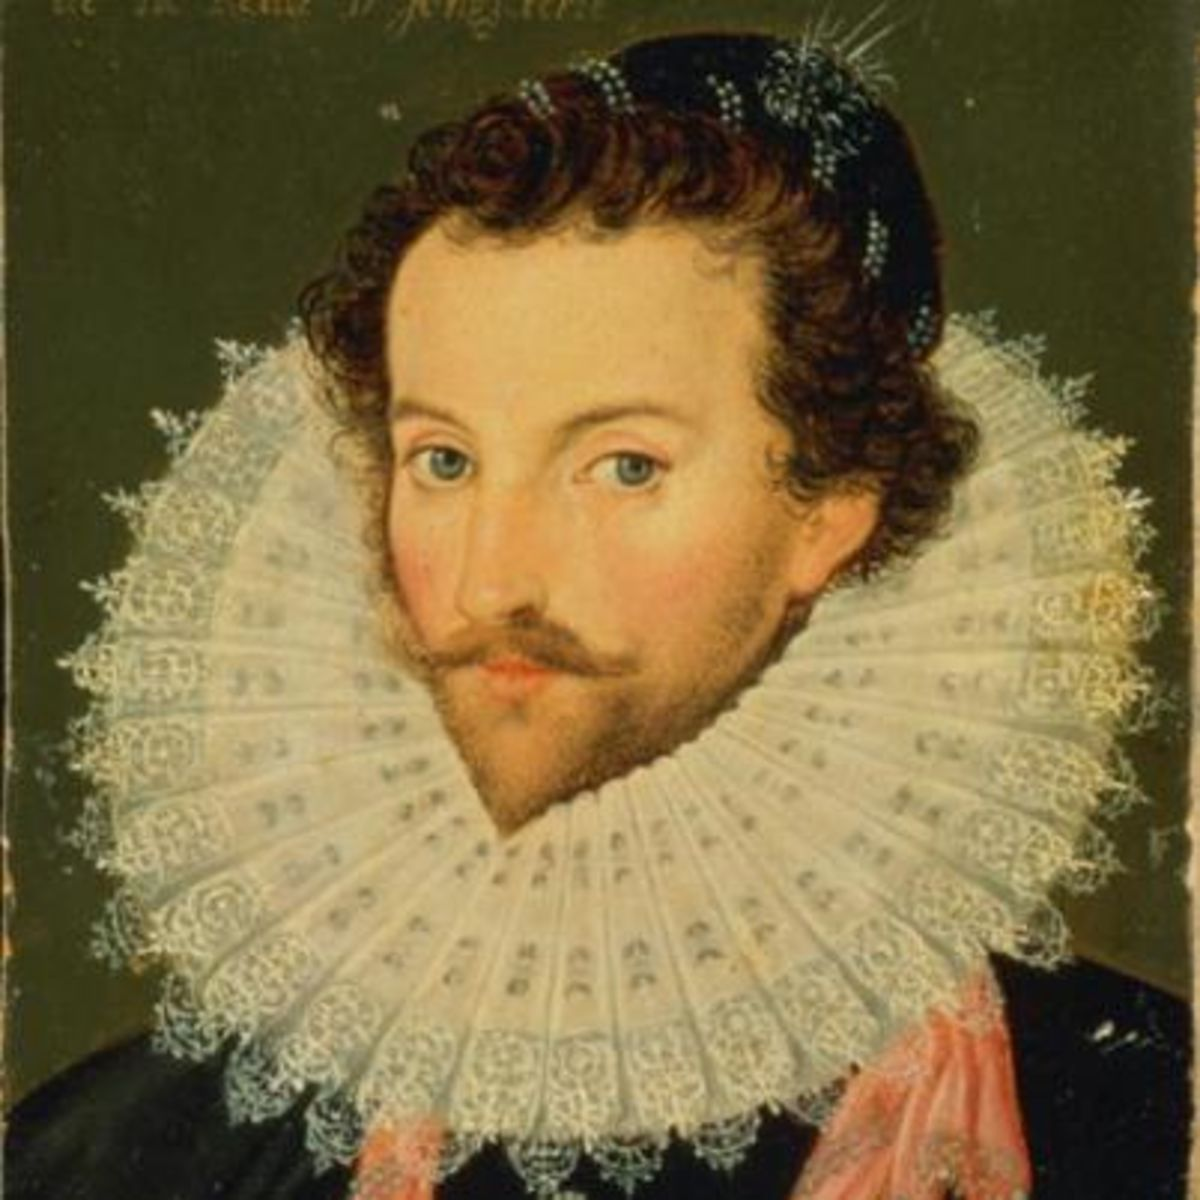 sir walter raleigh essays Free essay on sir walter raleigh sample essay paper on sir walter raleigh sir walter raleigh essay example online buy custom essays, term papers, research papers on sir walter raleigh at essay lib.